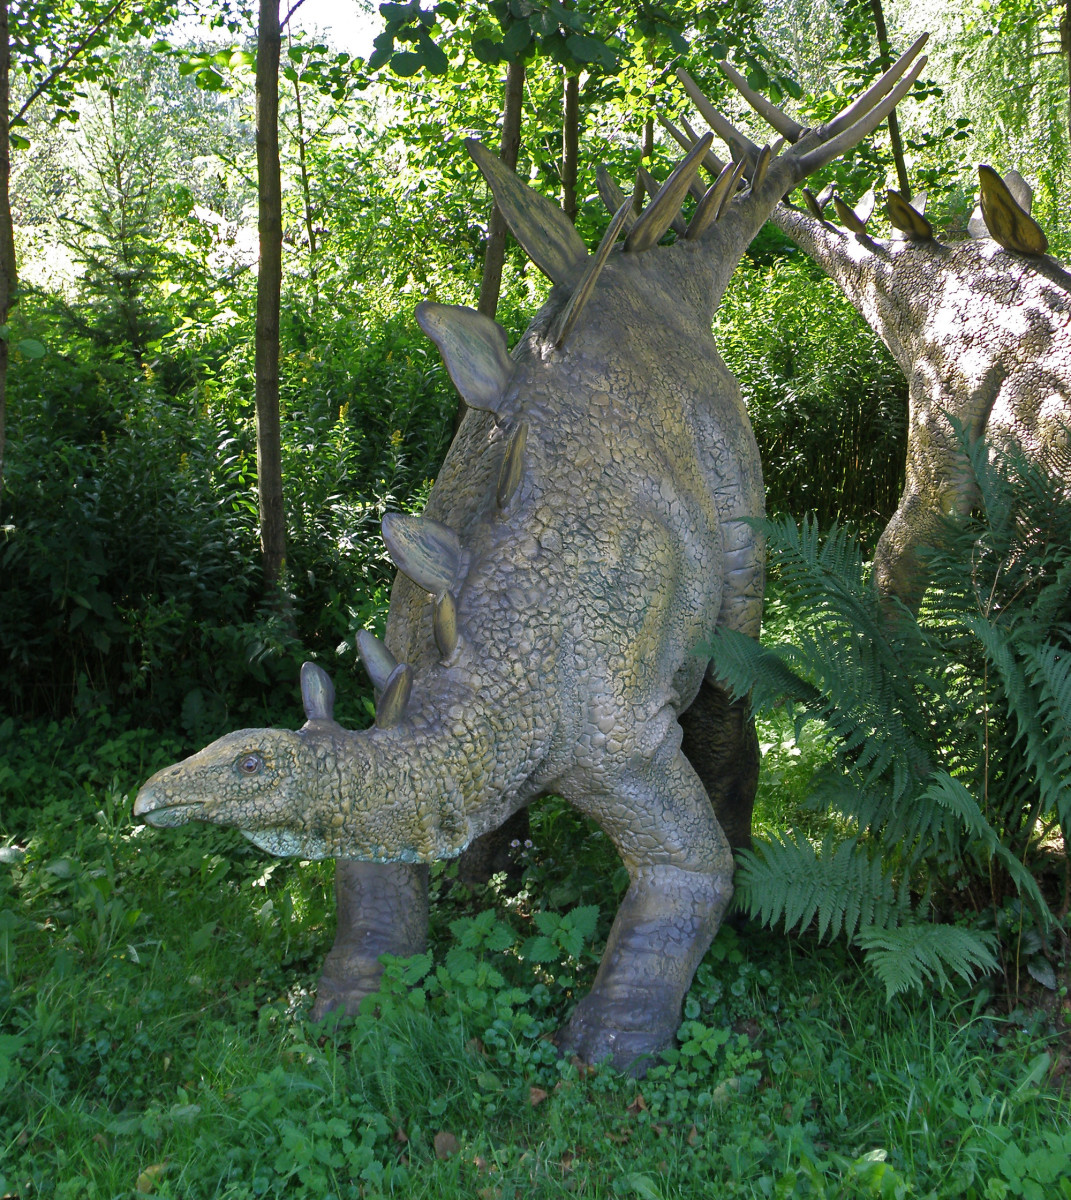 Model of stegosaurus in Bałtów Jurassic Park, Bałtów, Poland